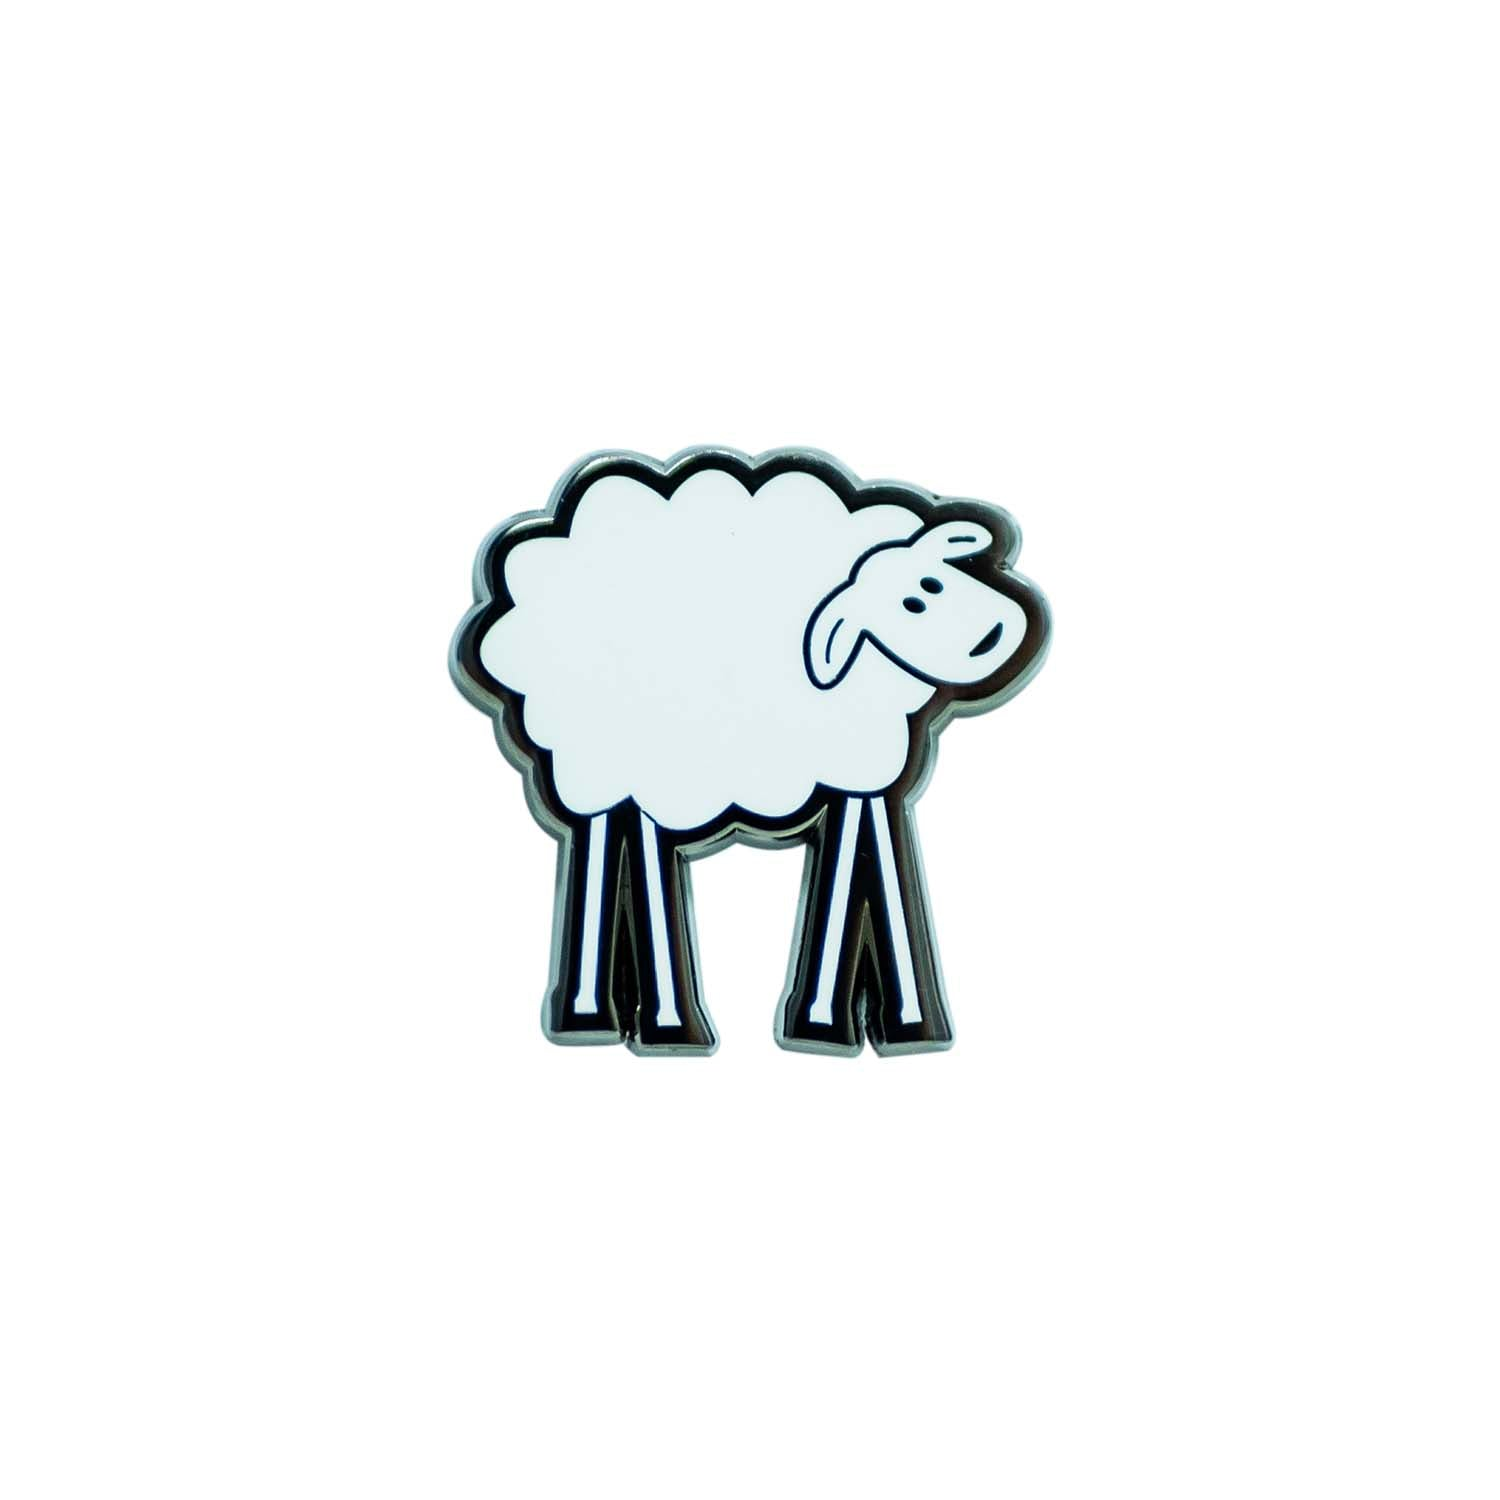 SHEEPEYRACE Logo Pin